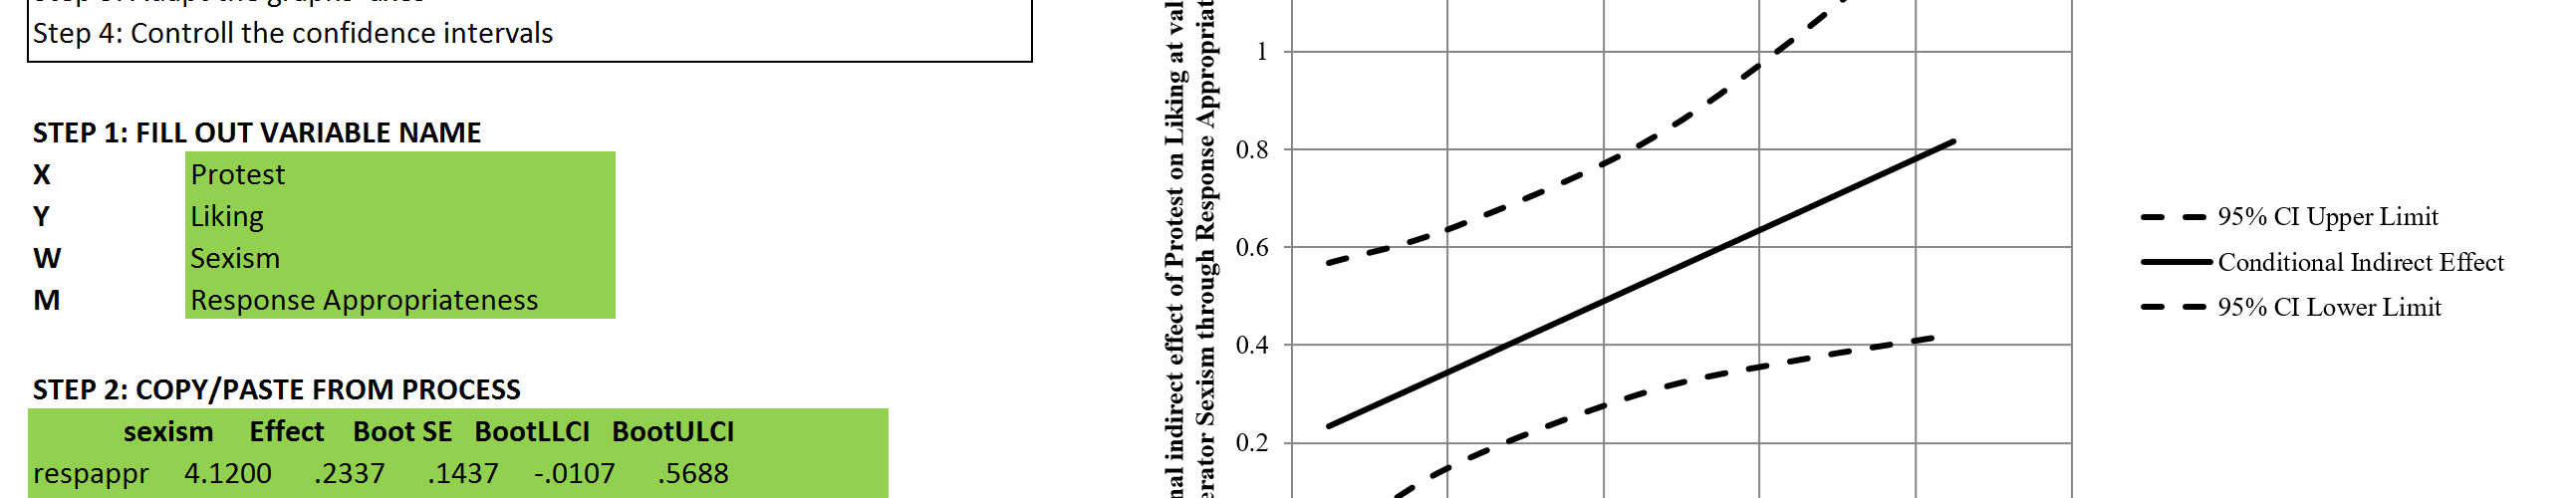 Graphing conditional indirect effects